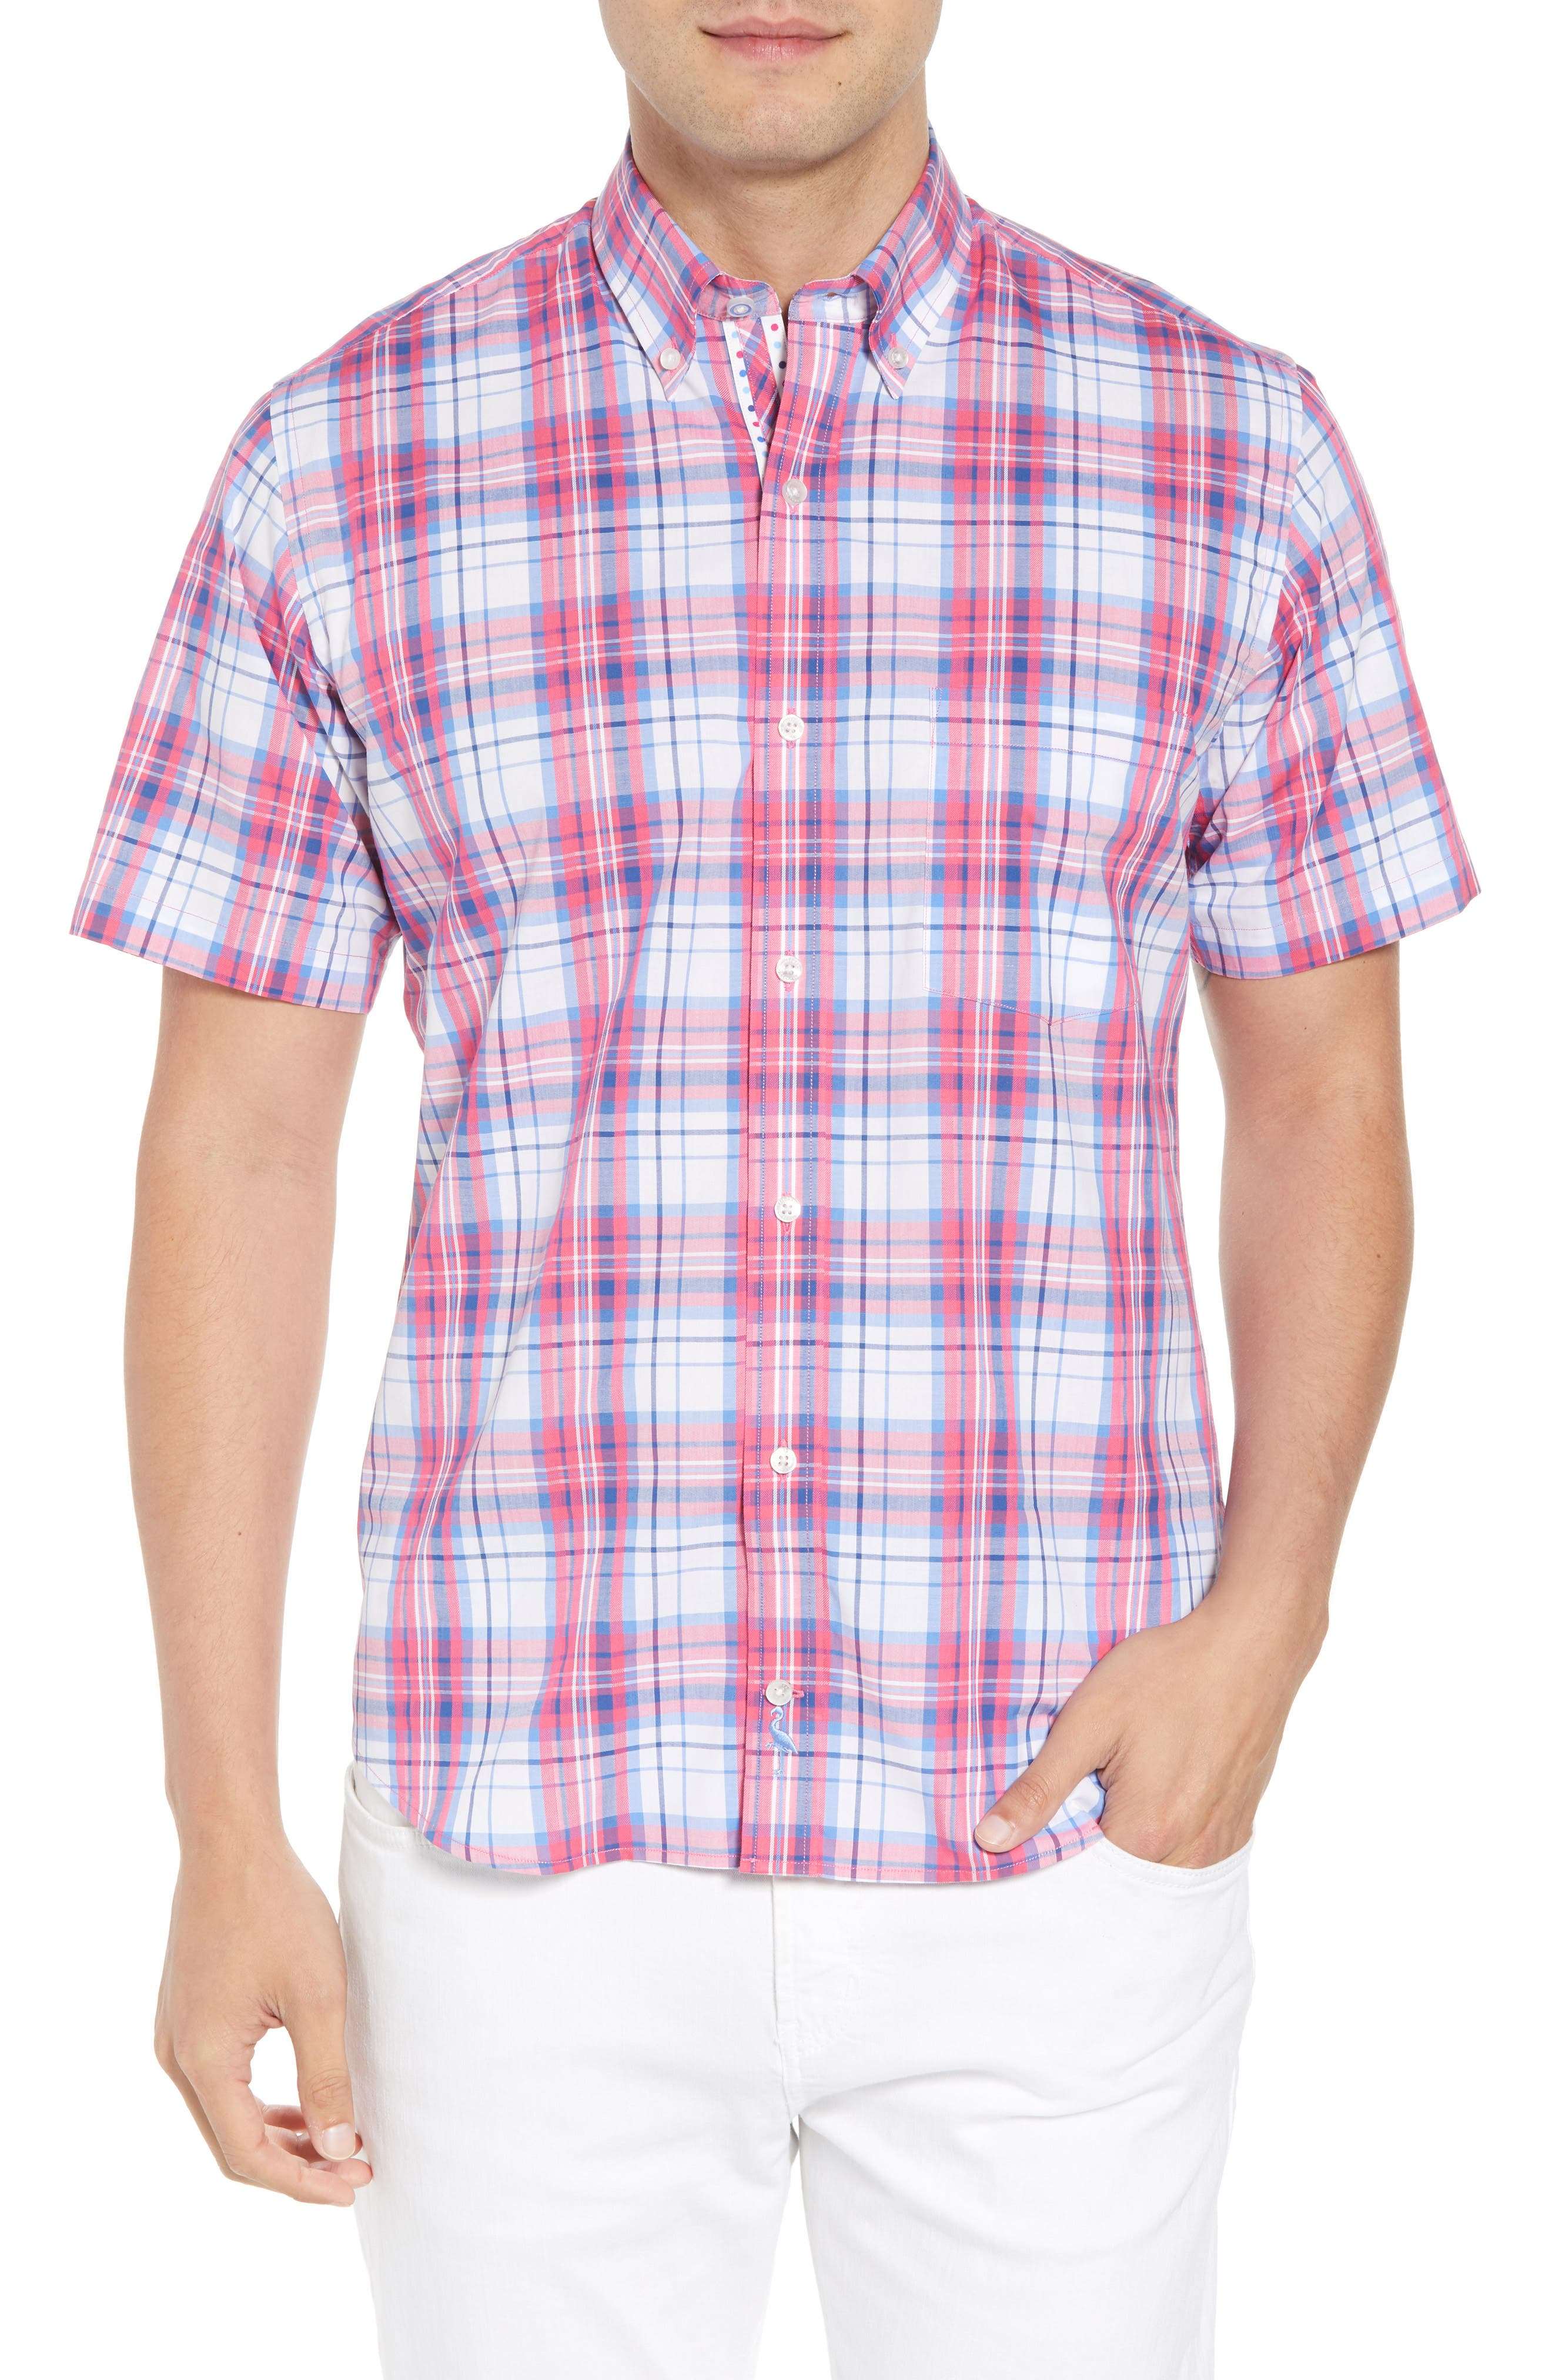 Alesso Regular Fit Plaid Sport Shirt,                             Main thumbnail 1, color,                             Coral